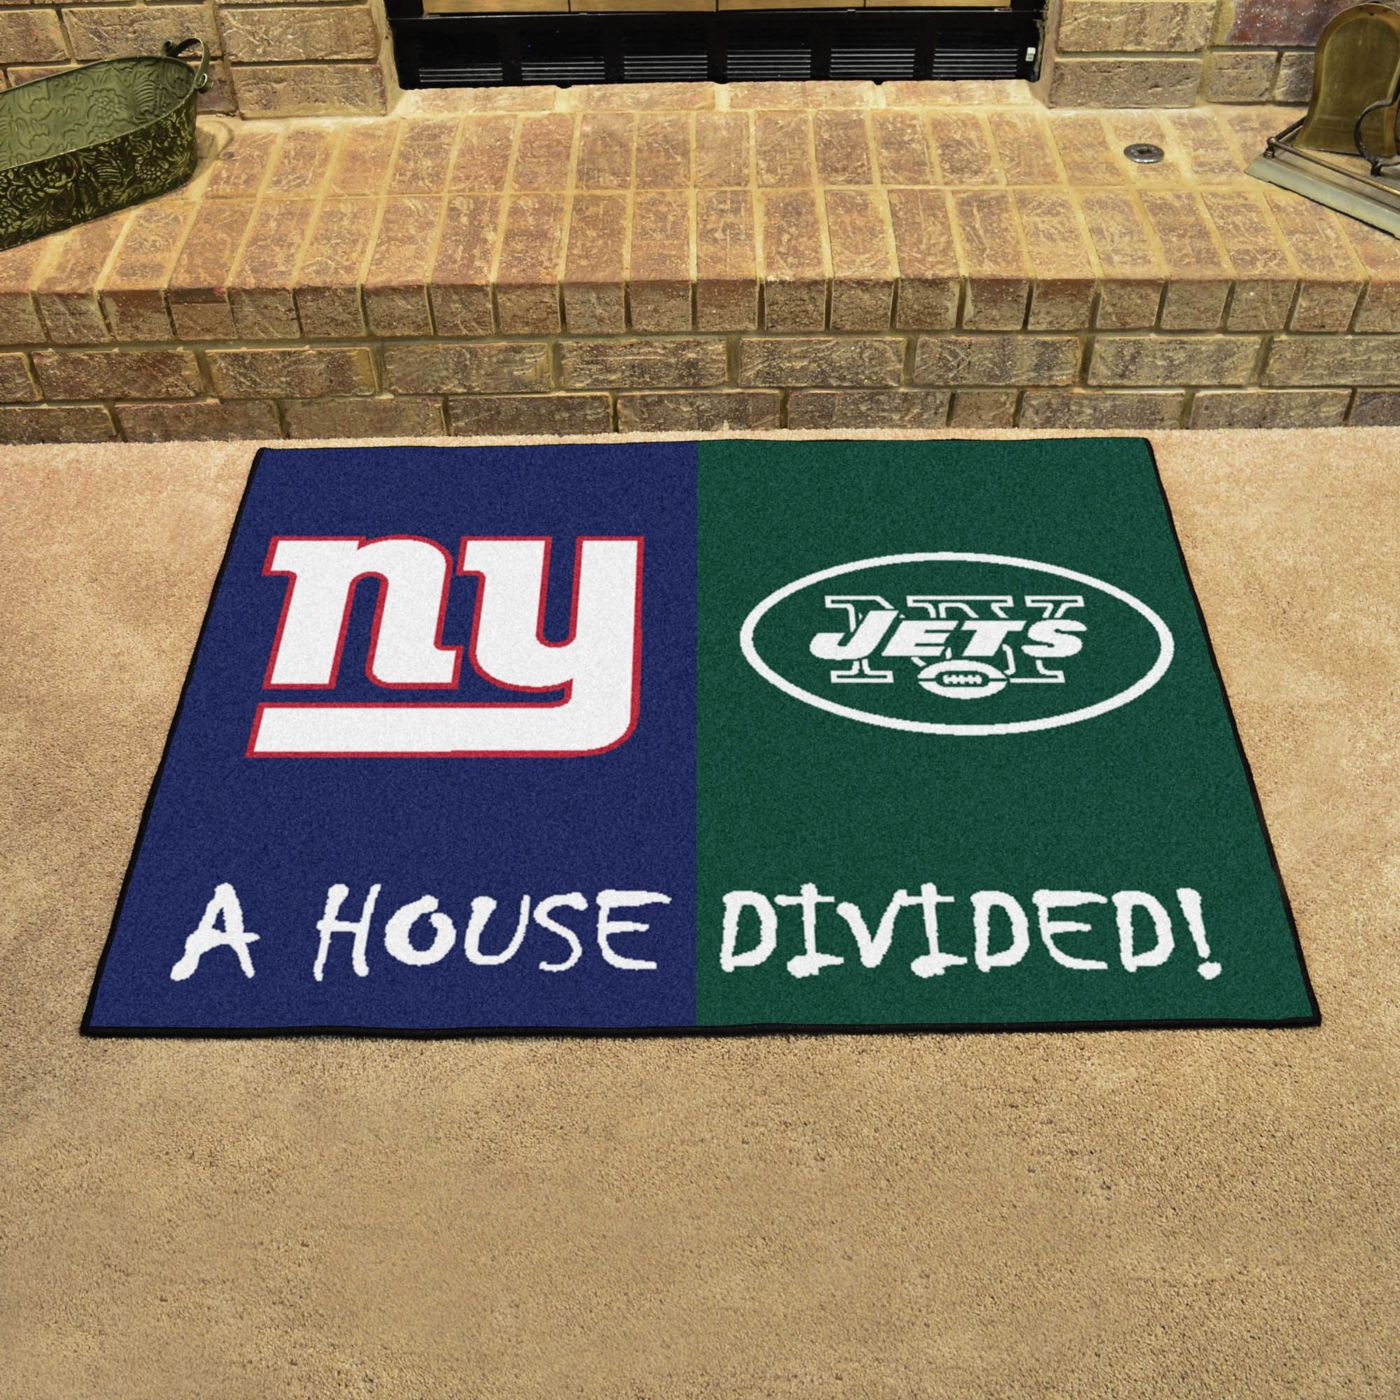 FANMATS New York Giants-New York Jets House Divided Mat